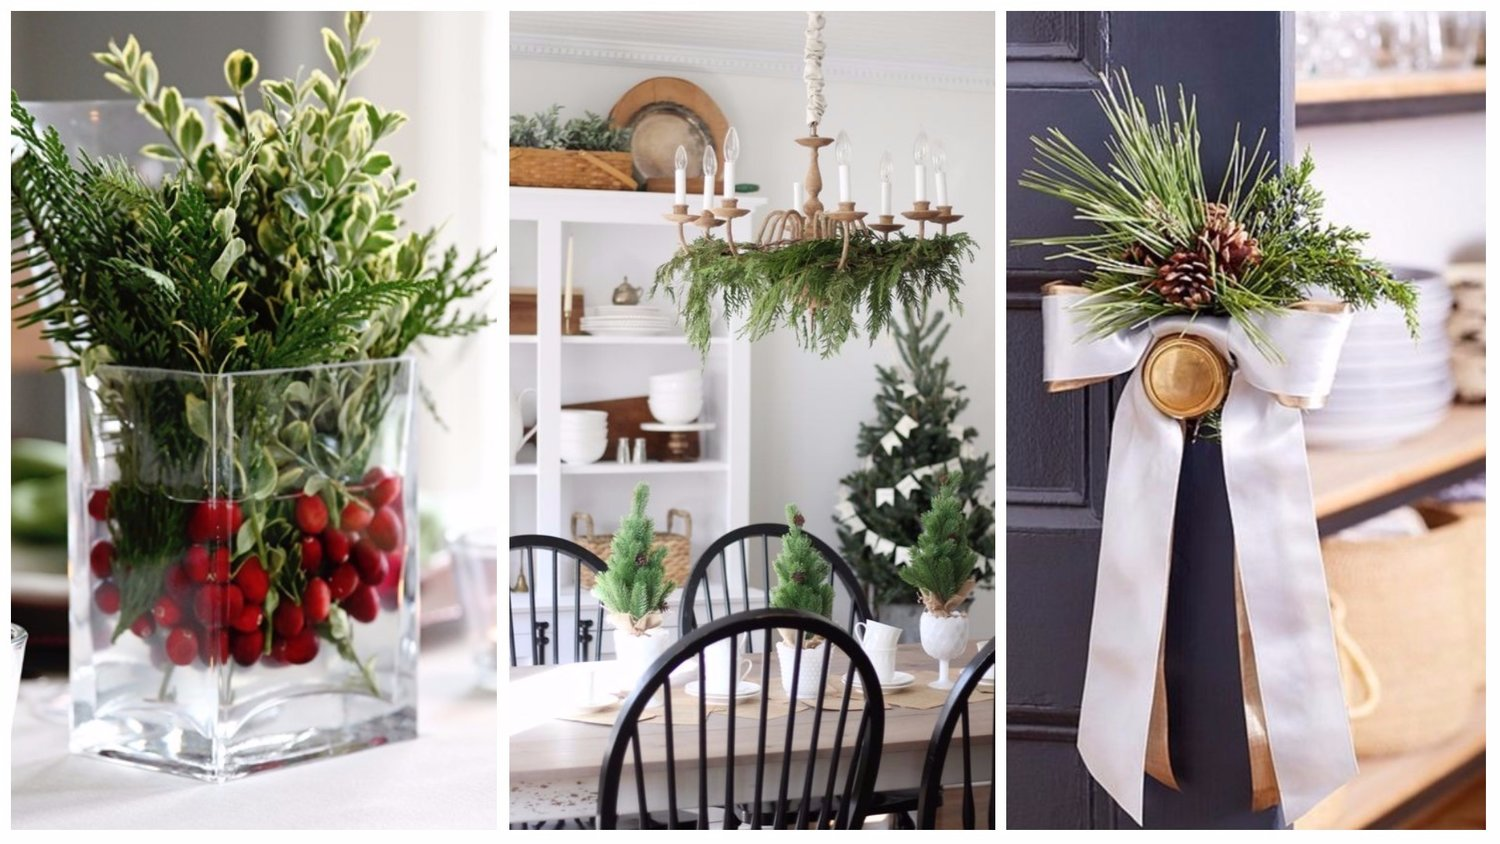 impressive easy ways to decorate indoors with live christmas greens - Christmas Greens